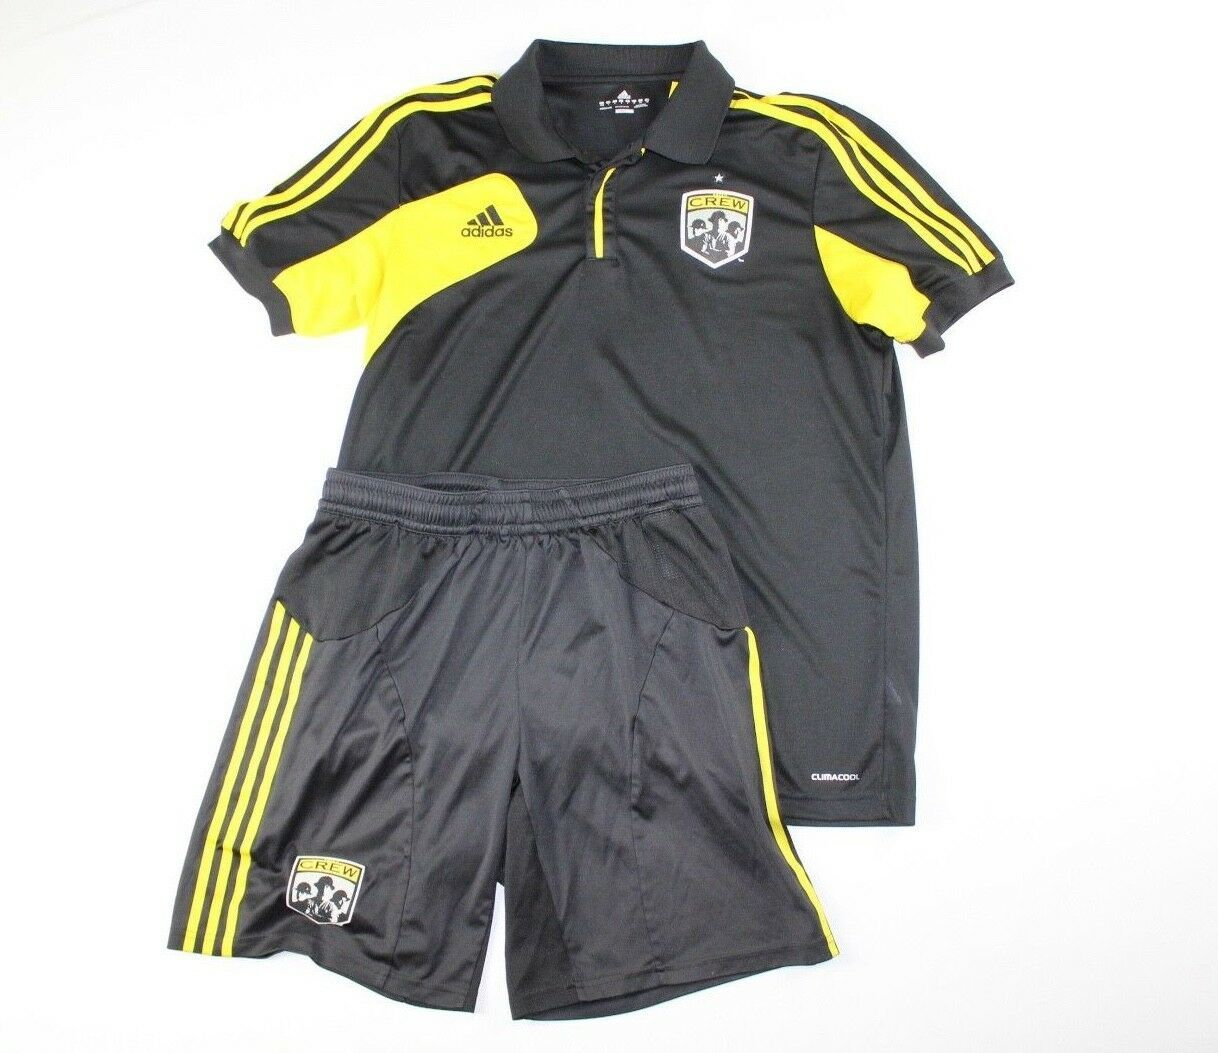 Adidas Mens Large ClimaCool Columbus Crew MLS Soccer Jersey Shorts Kit  Black -  72.22 50c7fb746